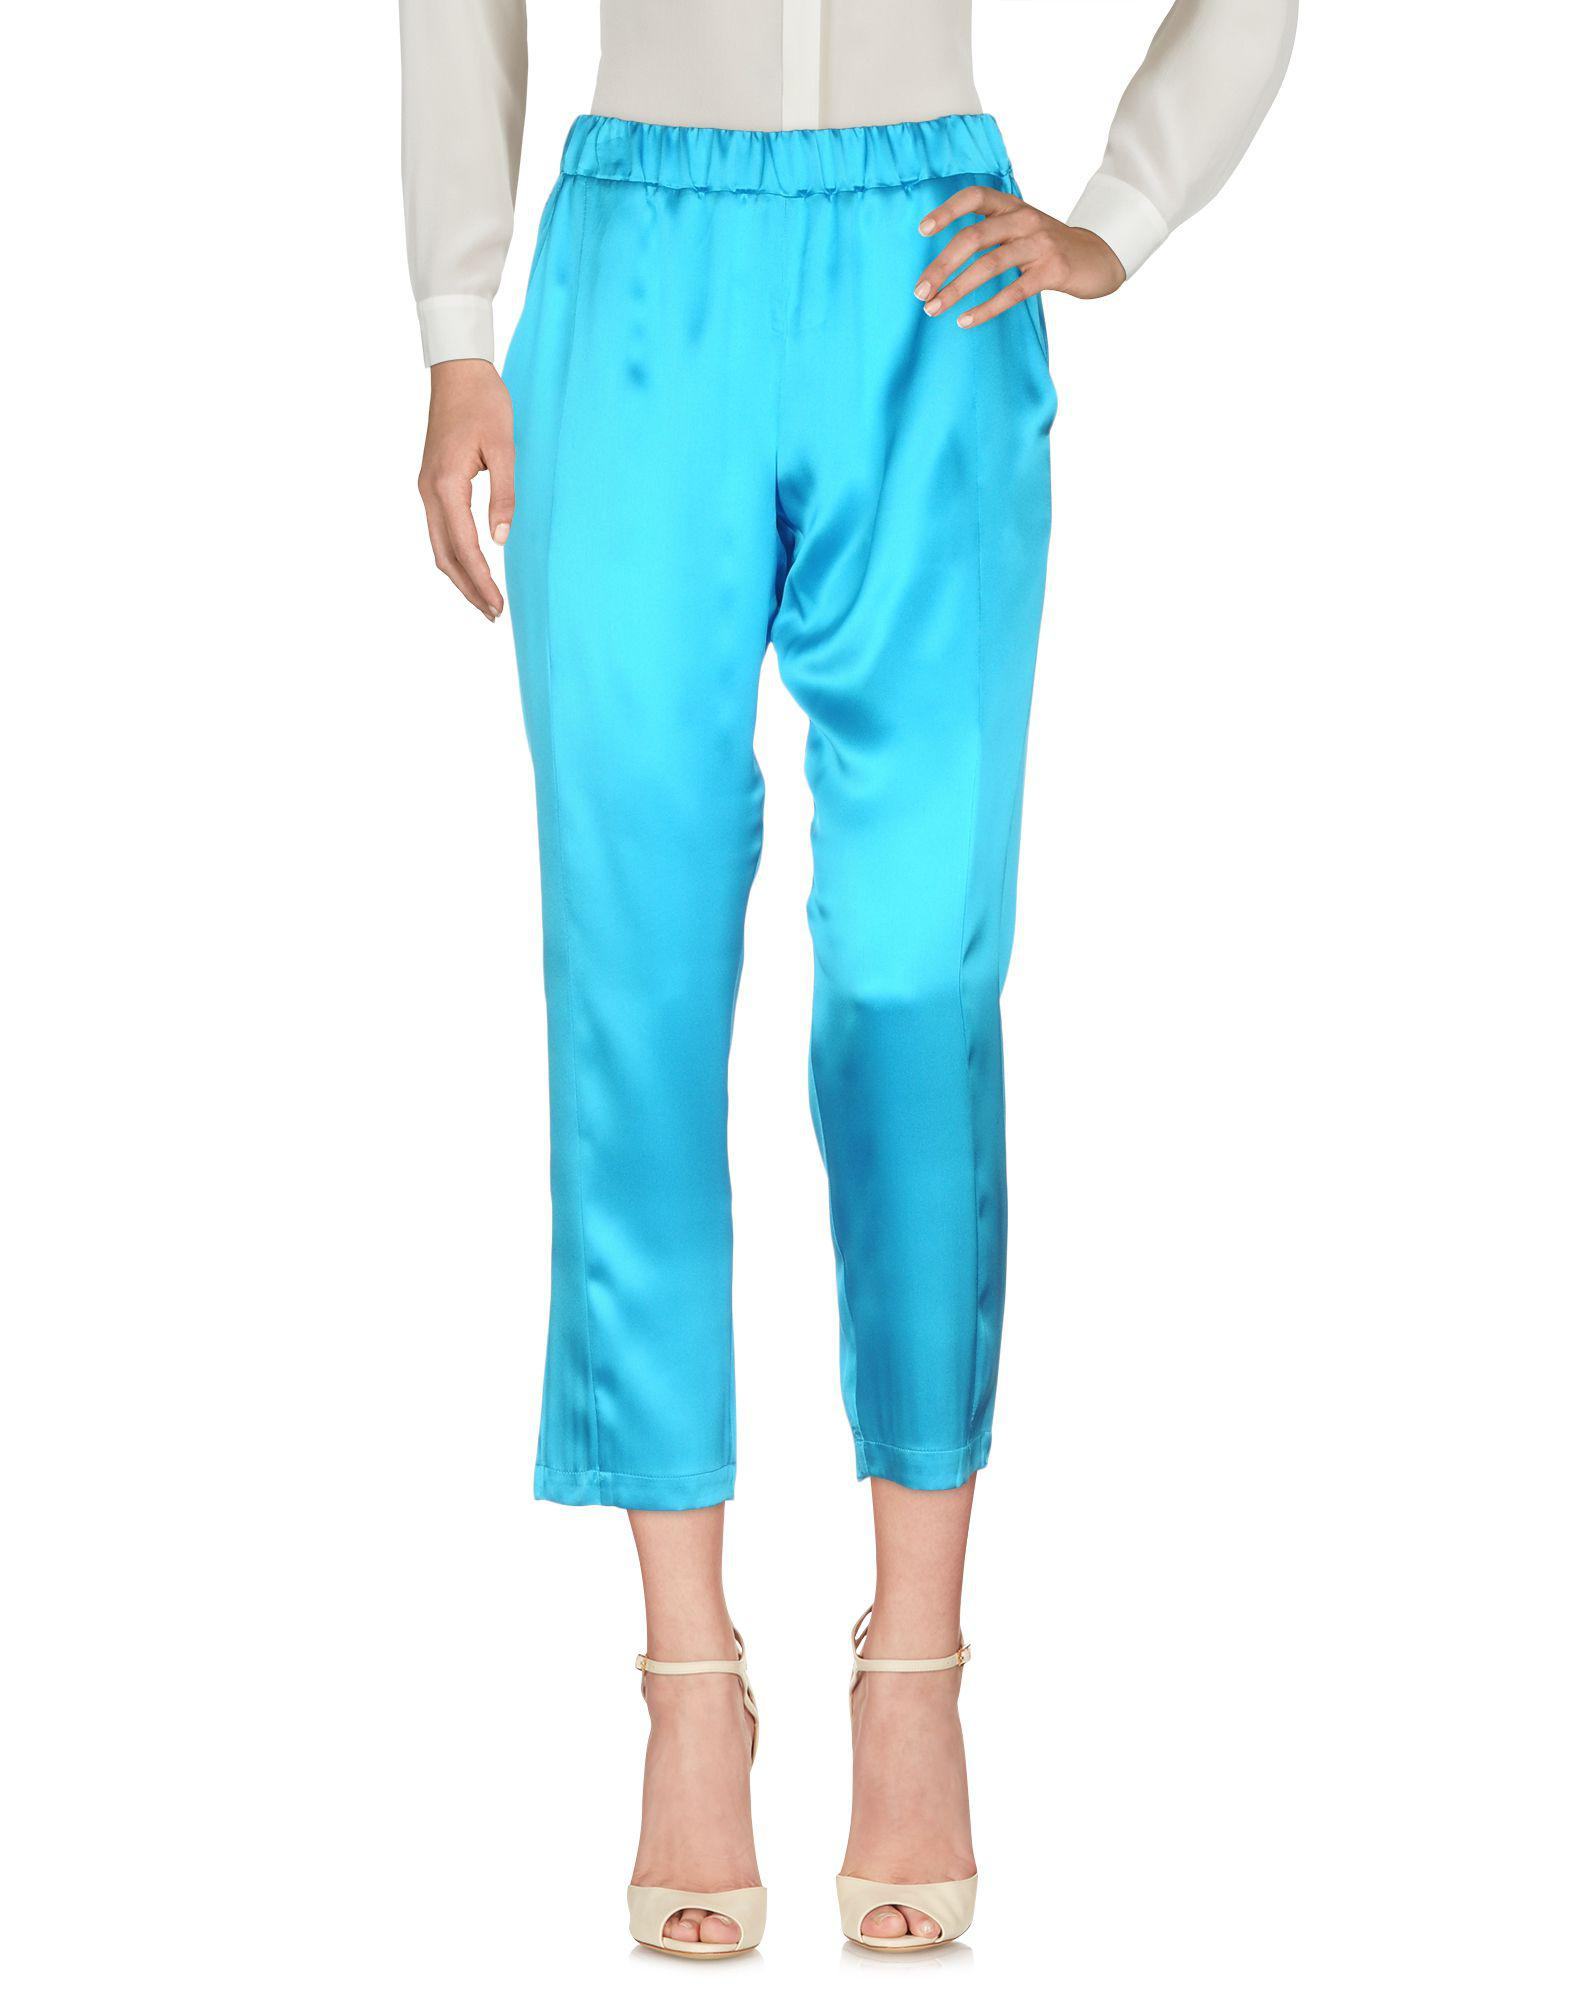 TROUSERS - Casual trousers Ultra Chic oDjfHrm